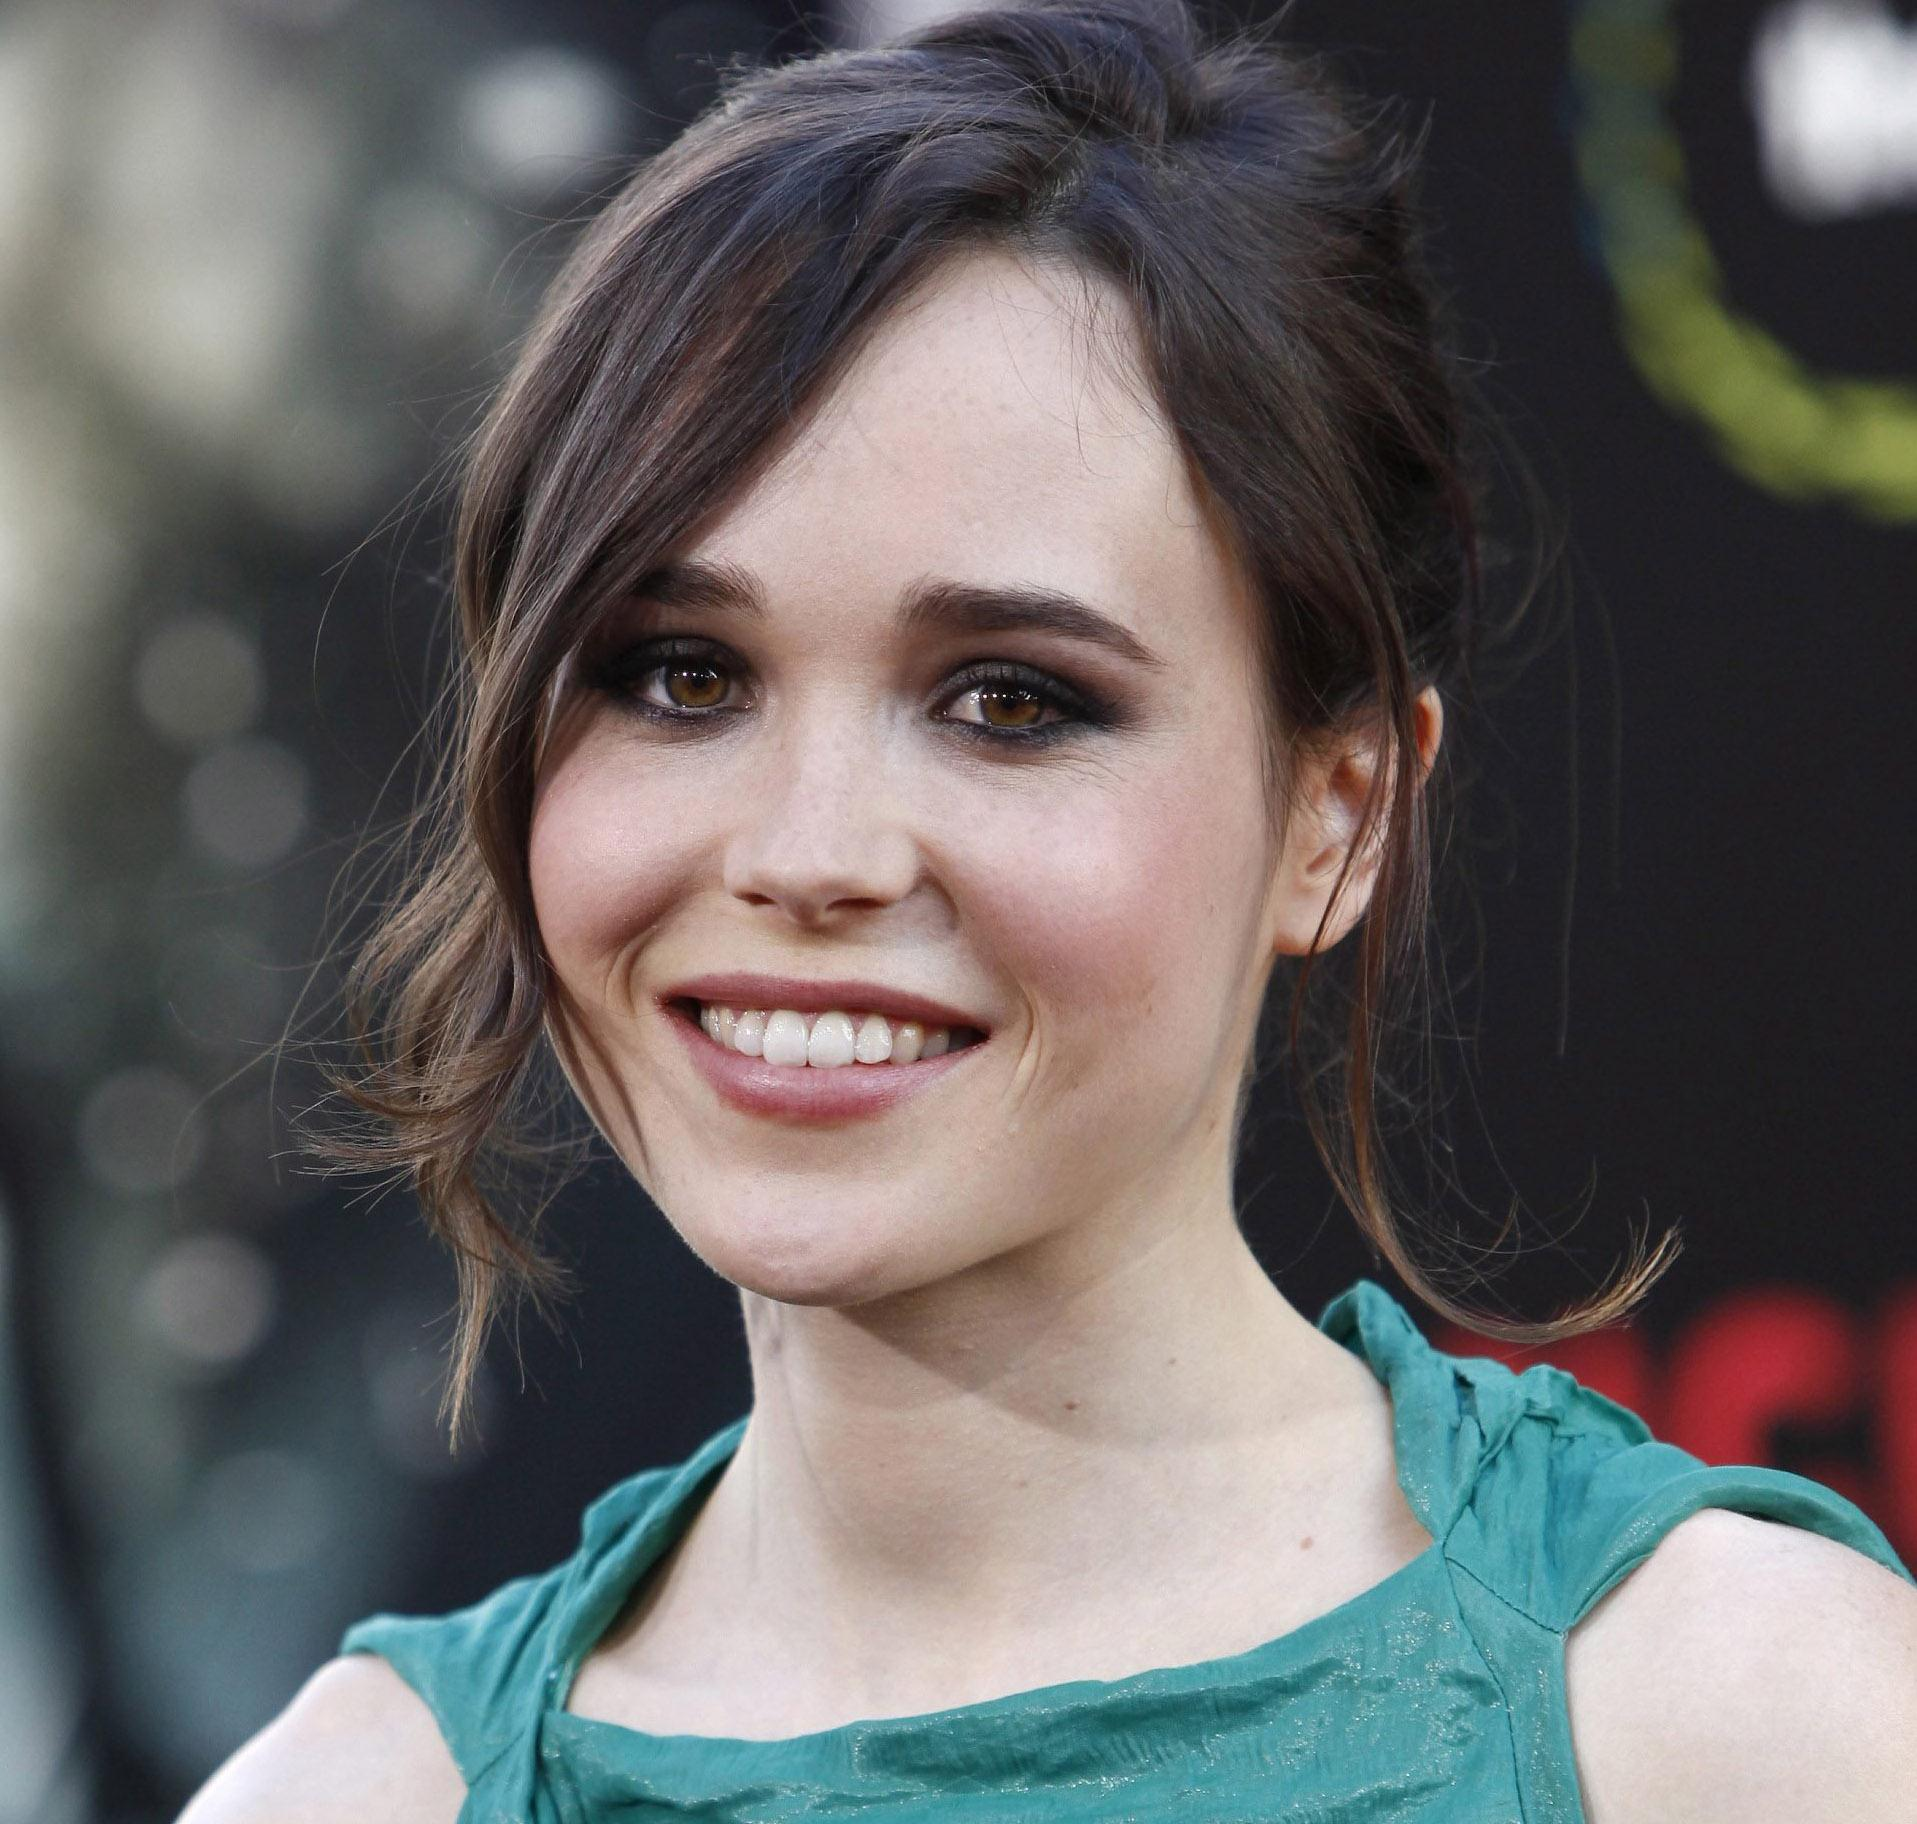 u0026 39 juno u0026 39  star ellen page reveals she is a lesbian